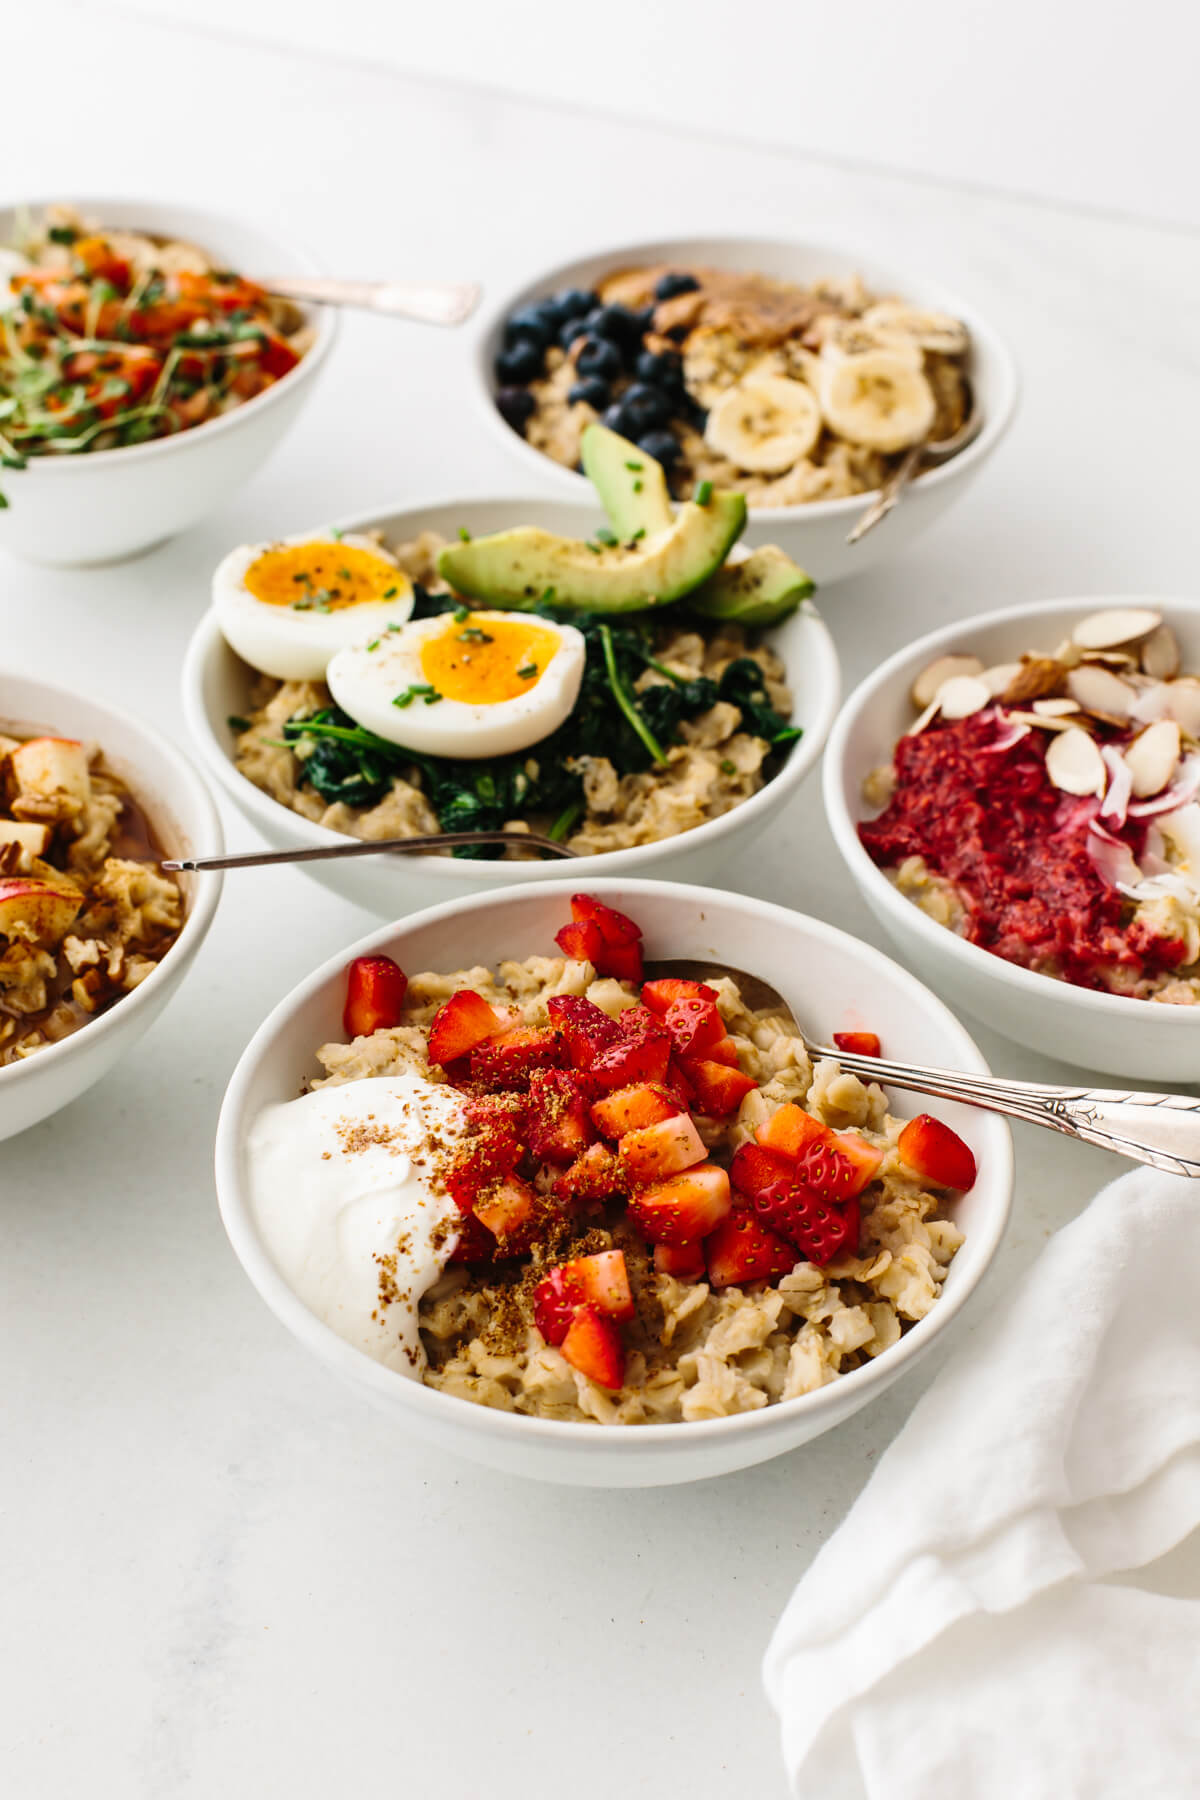 Bowls of oatmeal recipes on a table next to a napkin.